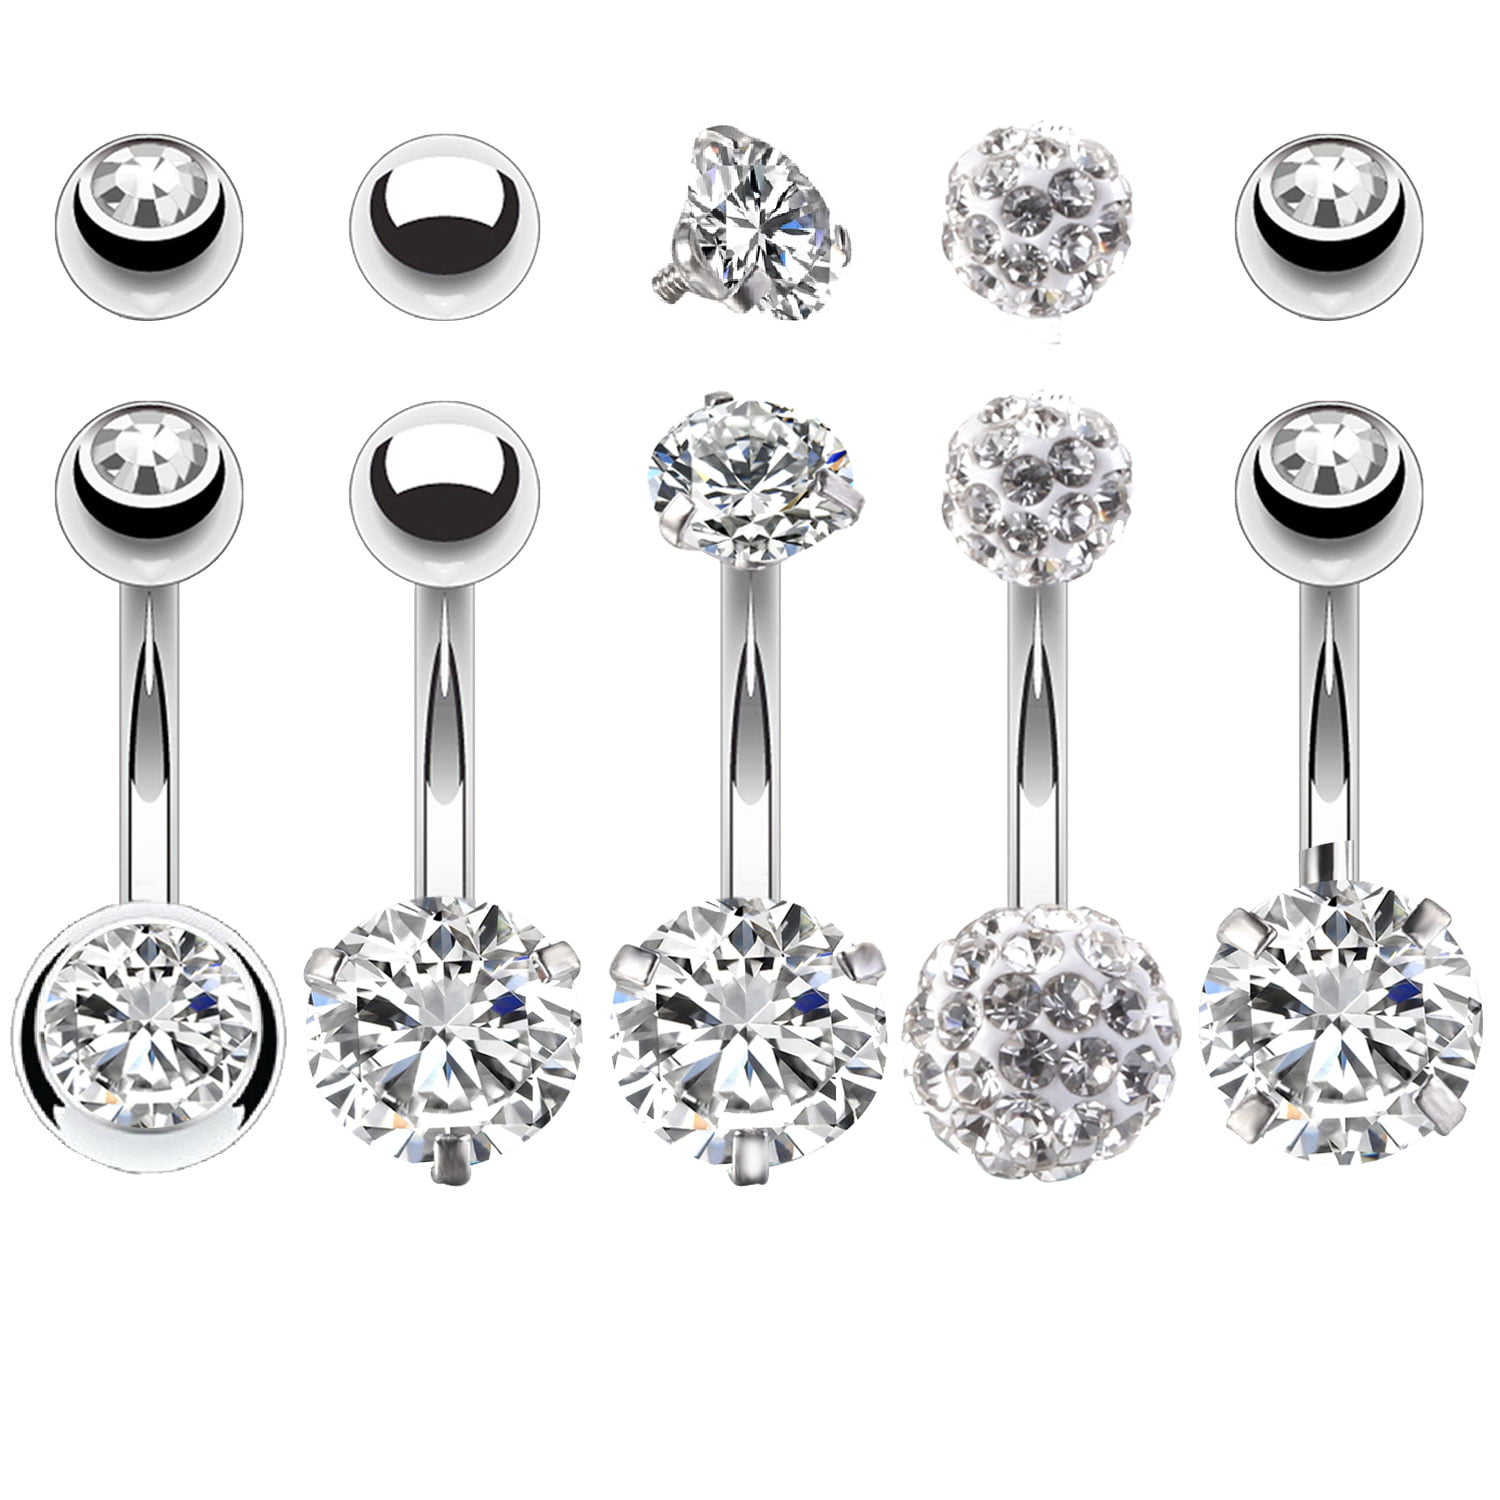 Bodyj4you 5pcs Belly Button Rings 14g Stainless Steel Cz Women Navel Body Piercing Jewelry Set